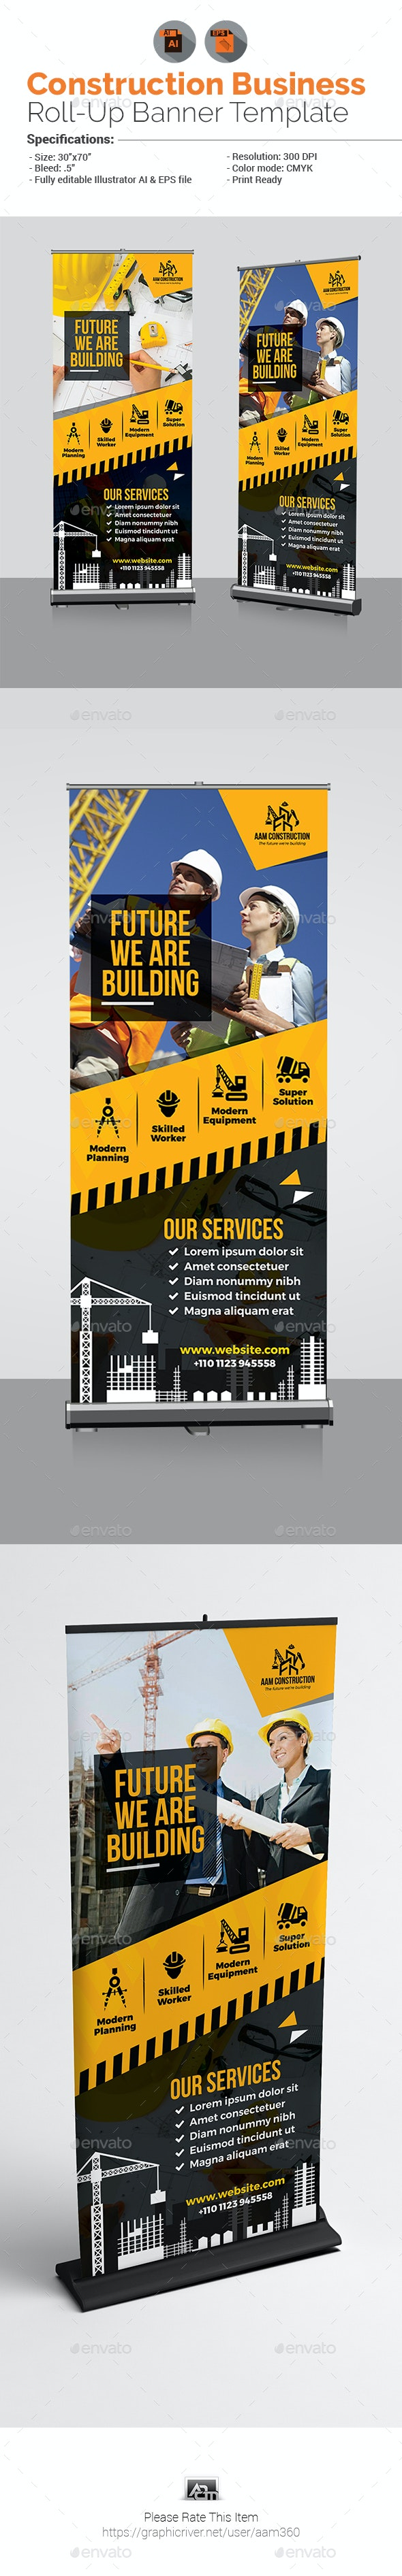 Construction Business Roll-Up Banner Template - Signage Print Templates